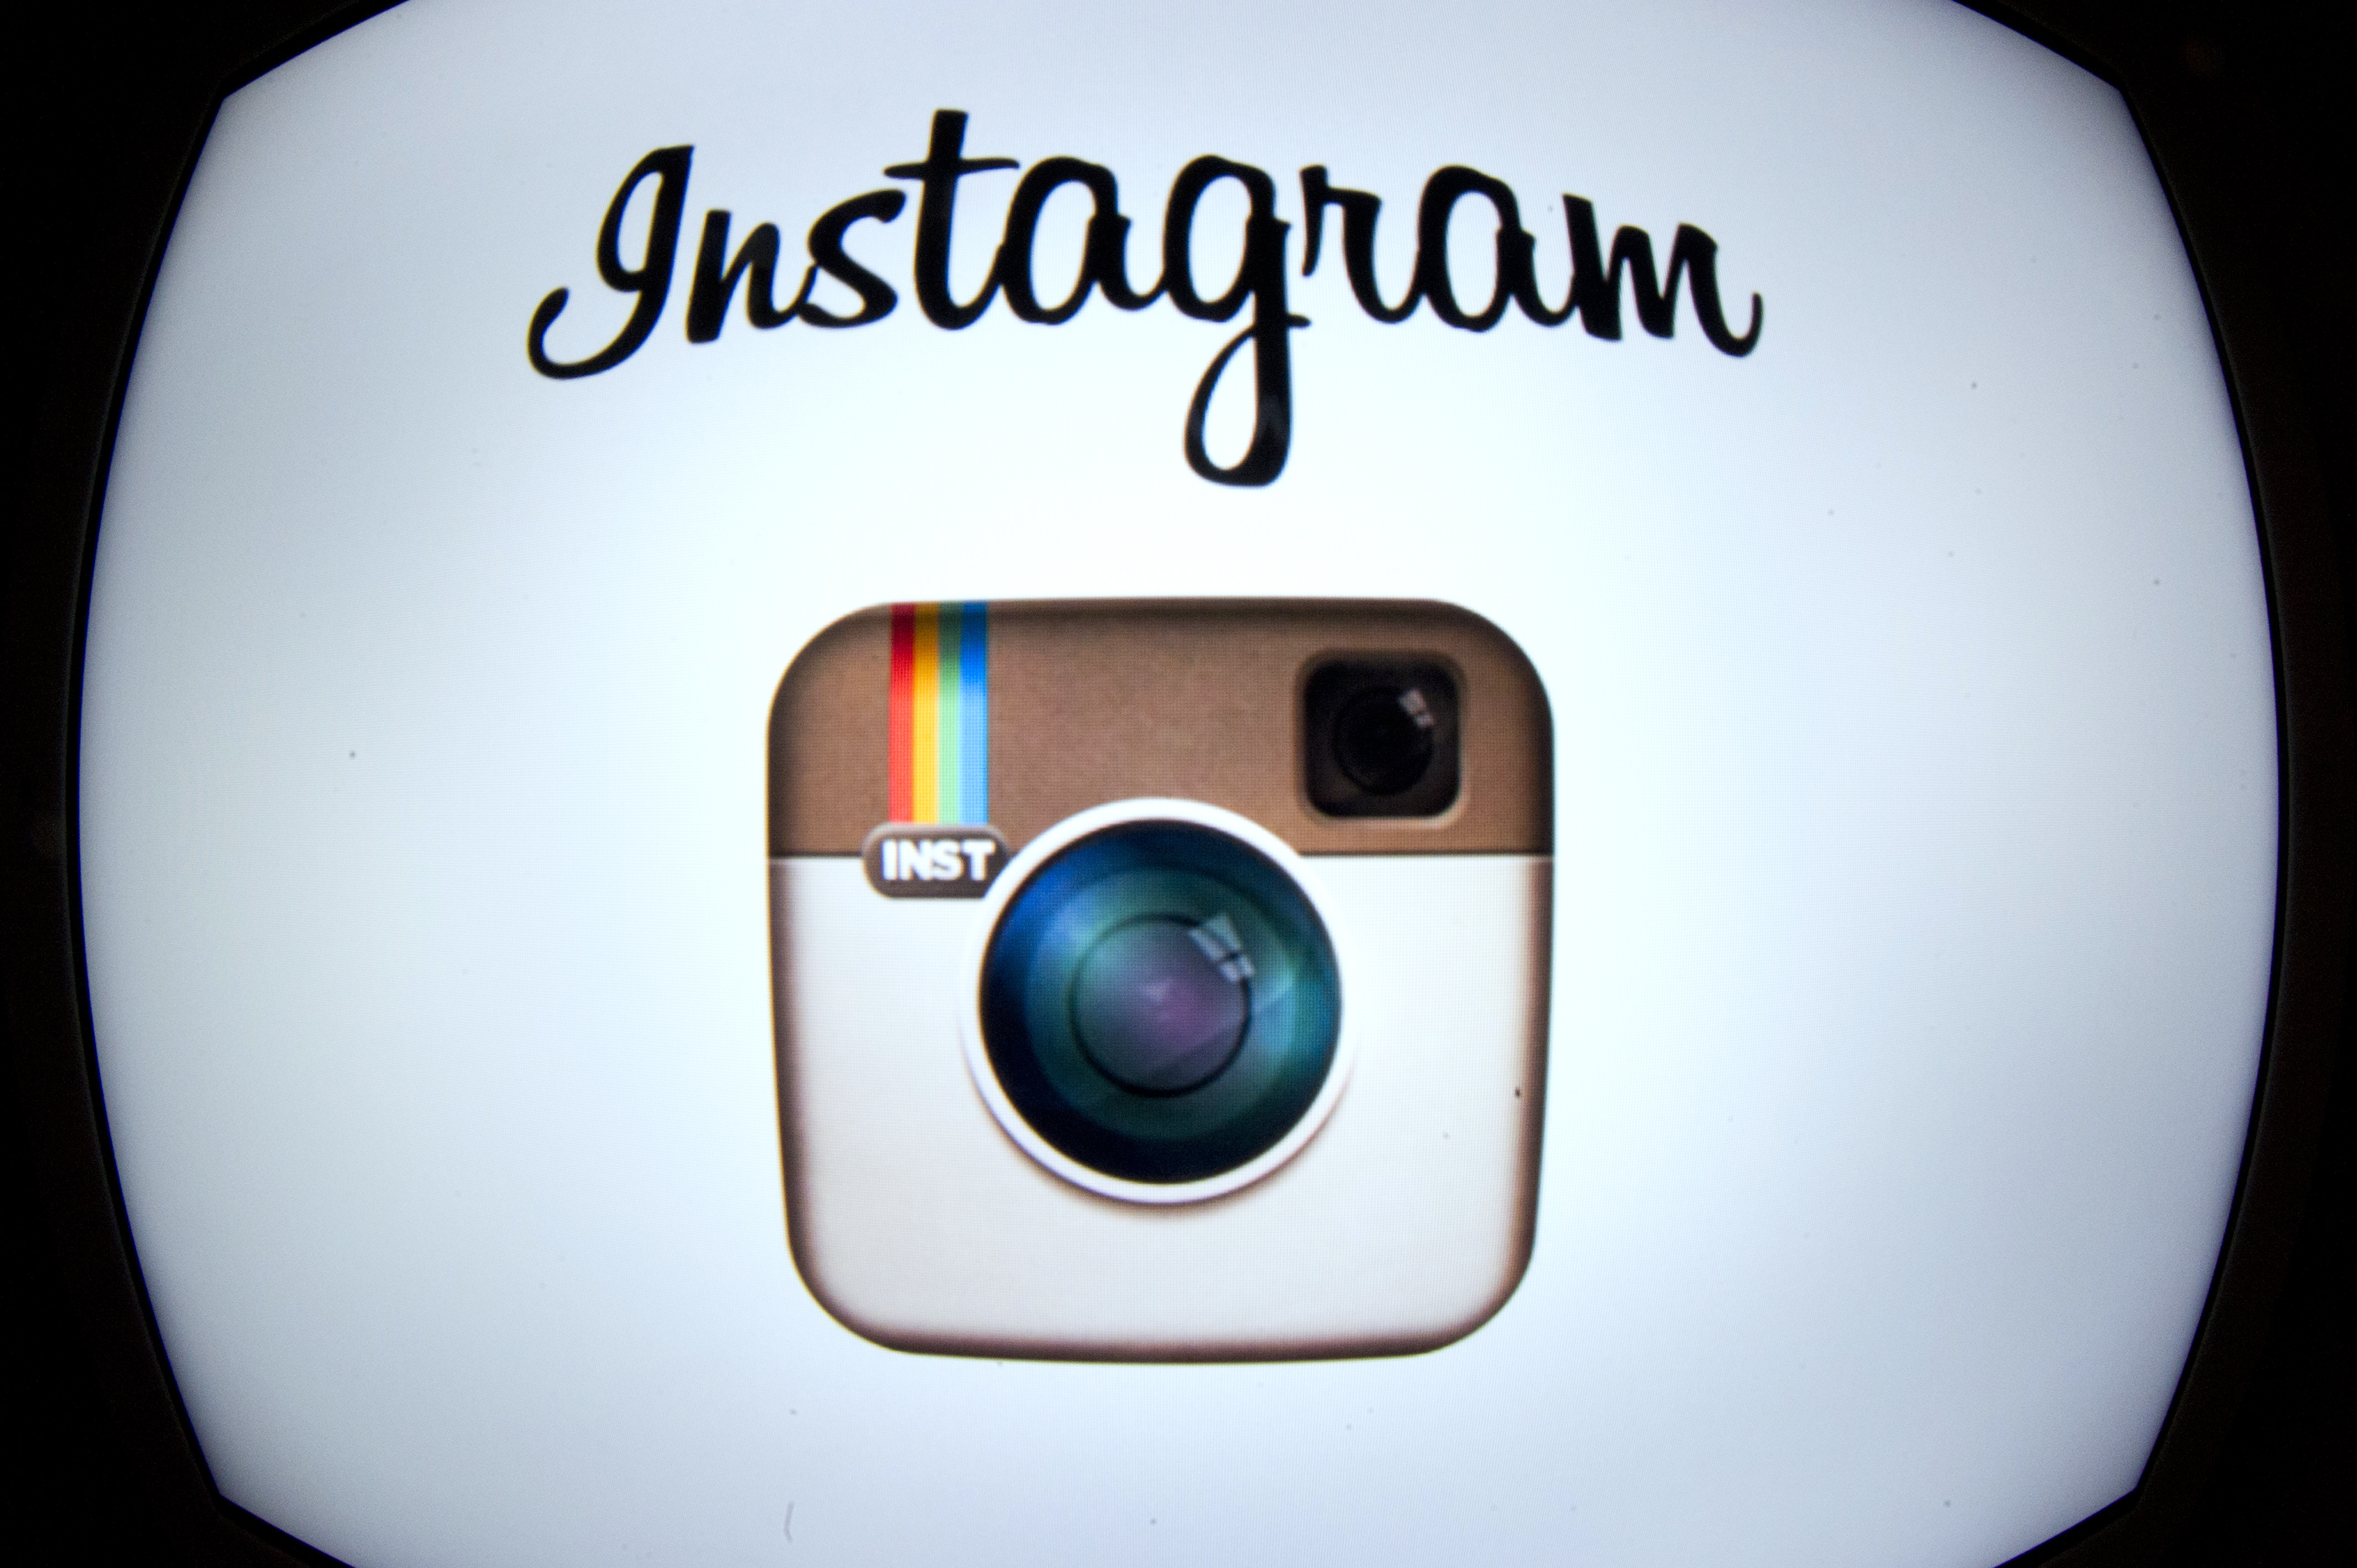 The Instagram logo is displayed on a smartphone on December 20, 2012 in Paris.